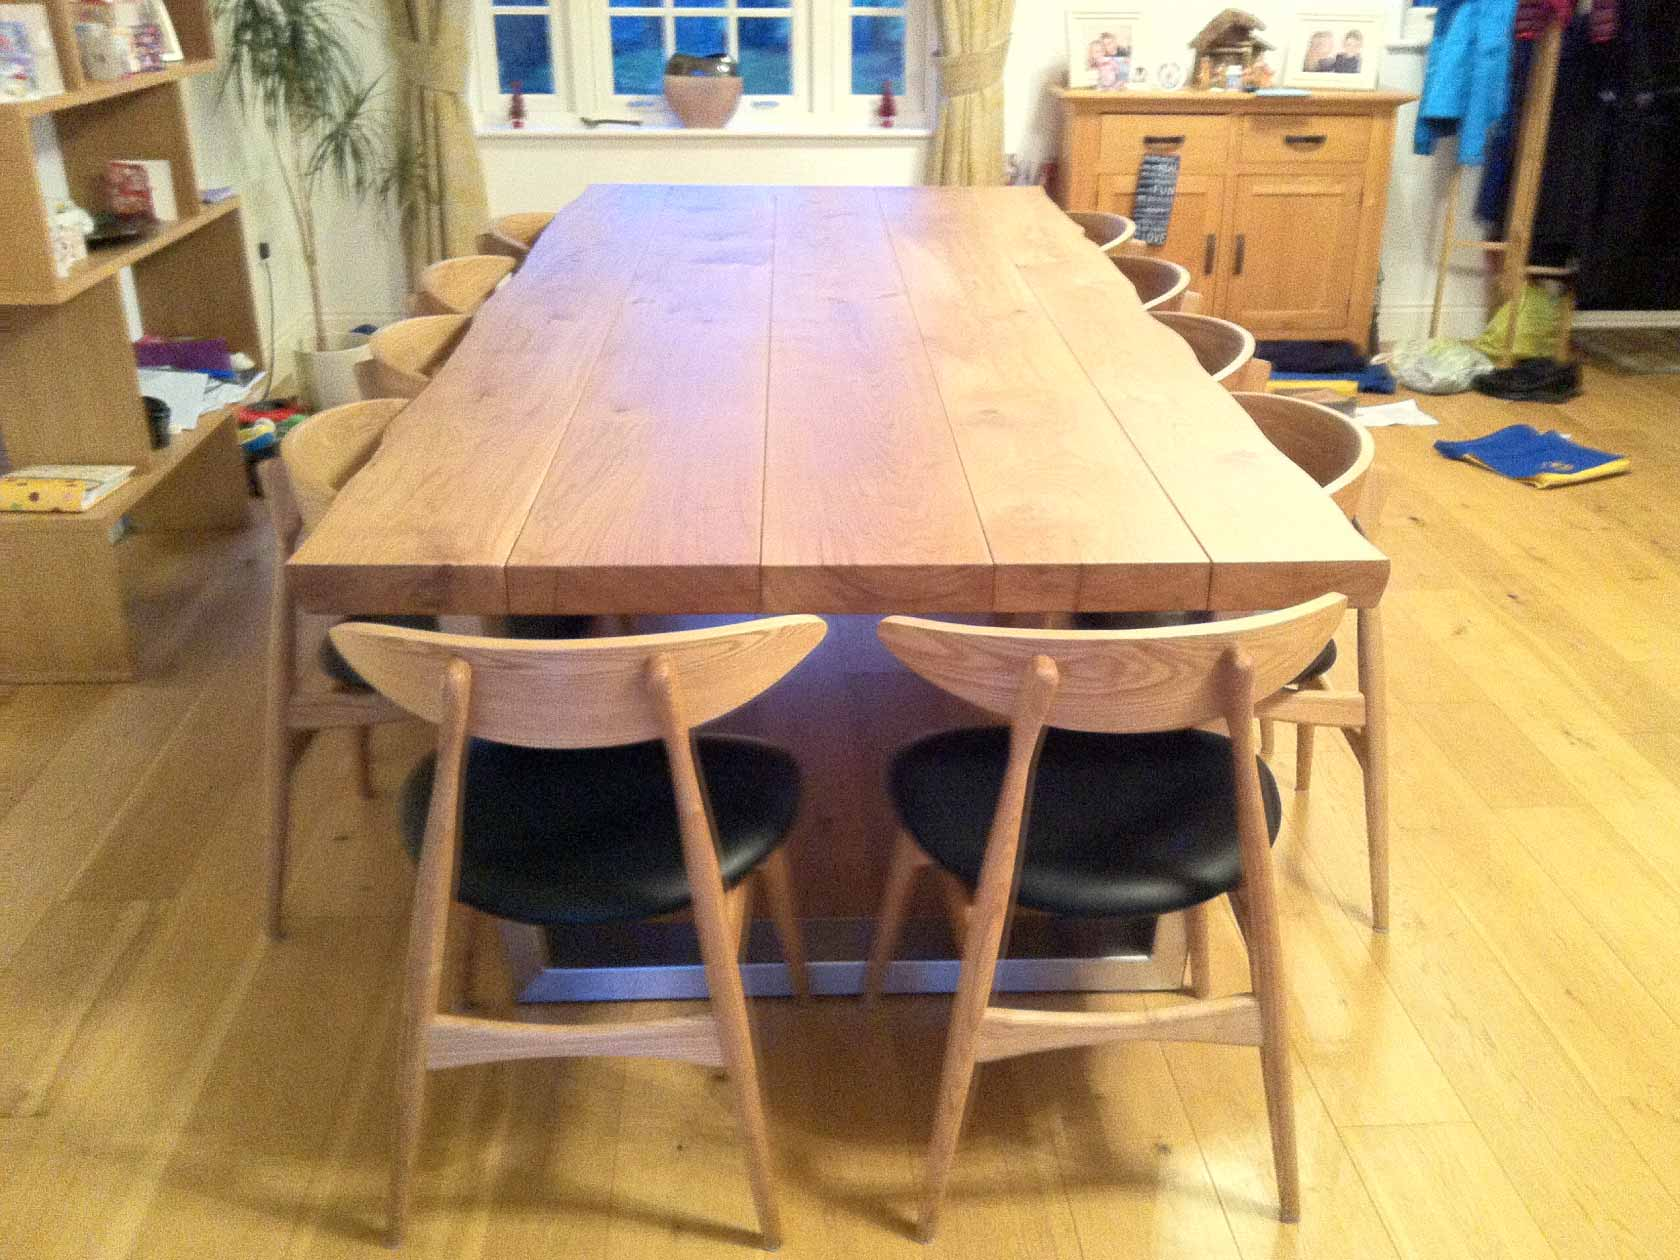 rustic-oak-dining-table-from-abacus-tables-3m-x-1.3m-project-251